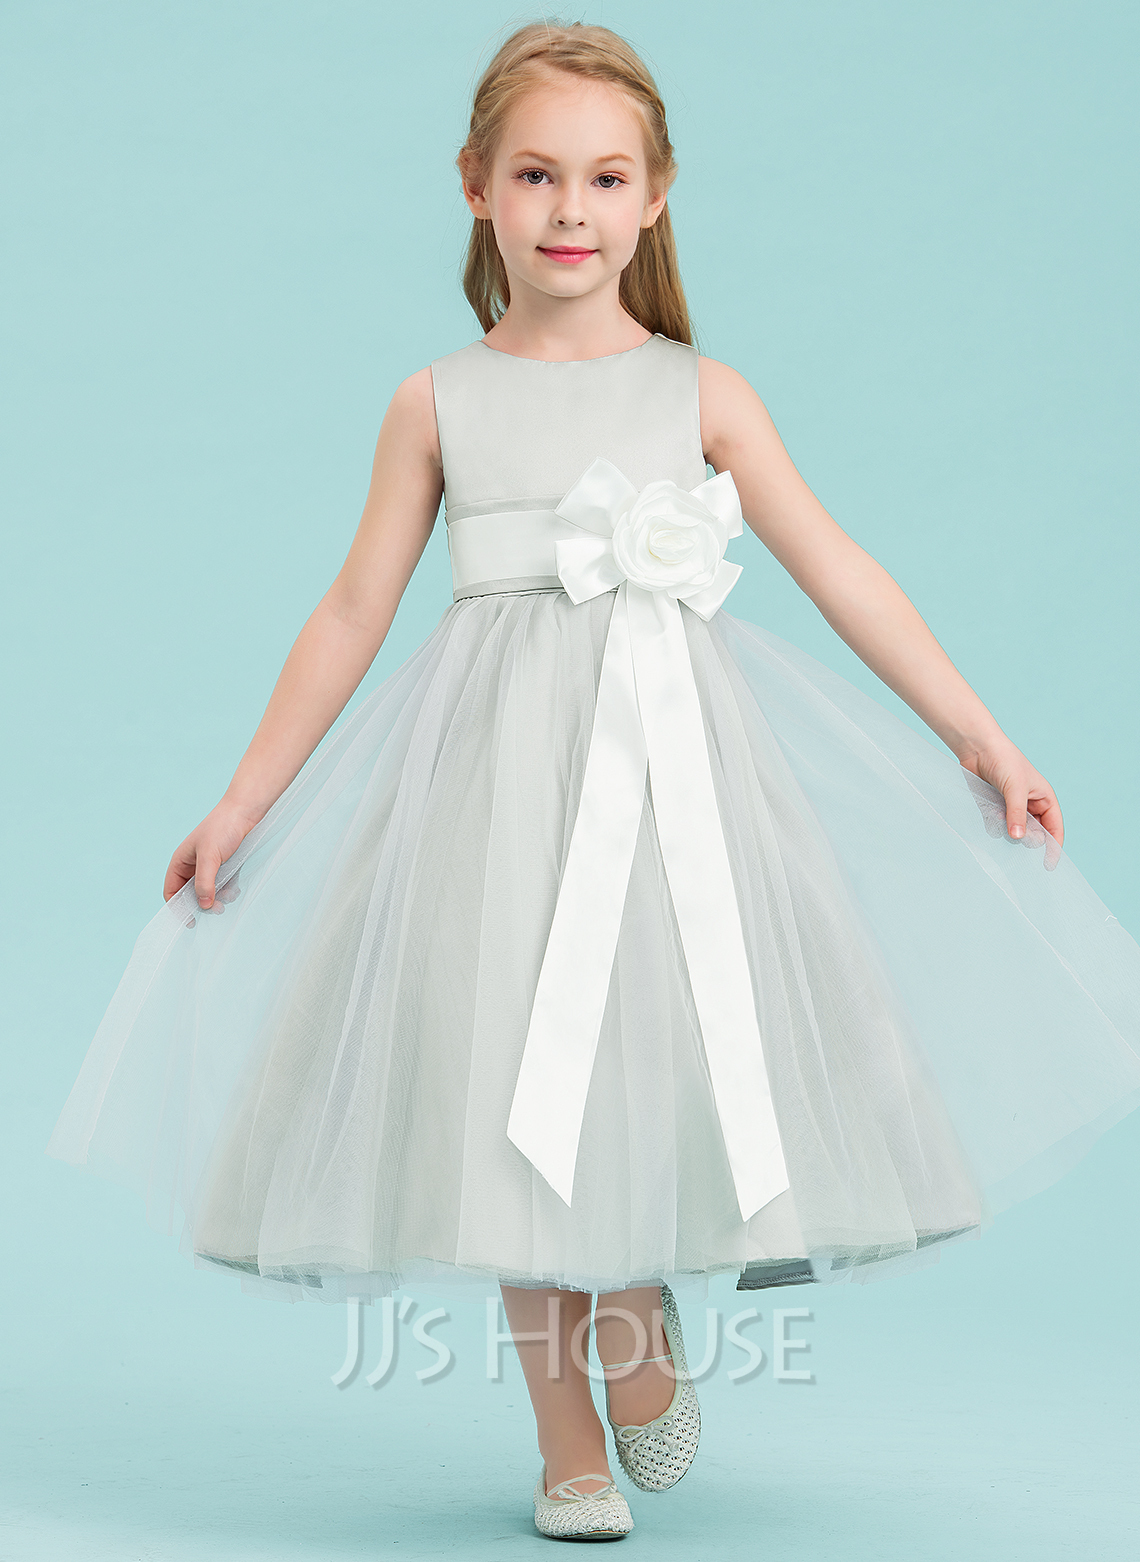 9f873742ad274 A-Line/Princess Tea-length Flower Girl Dress - Satin/Tulle Sleeveless.  Loading zoom